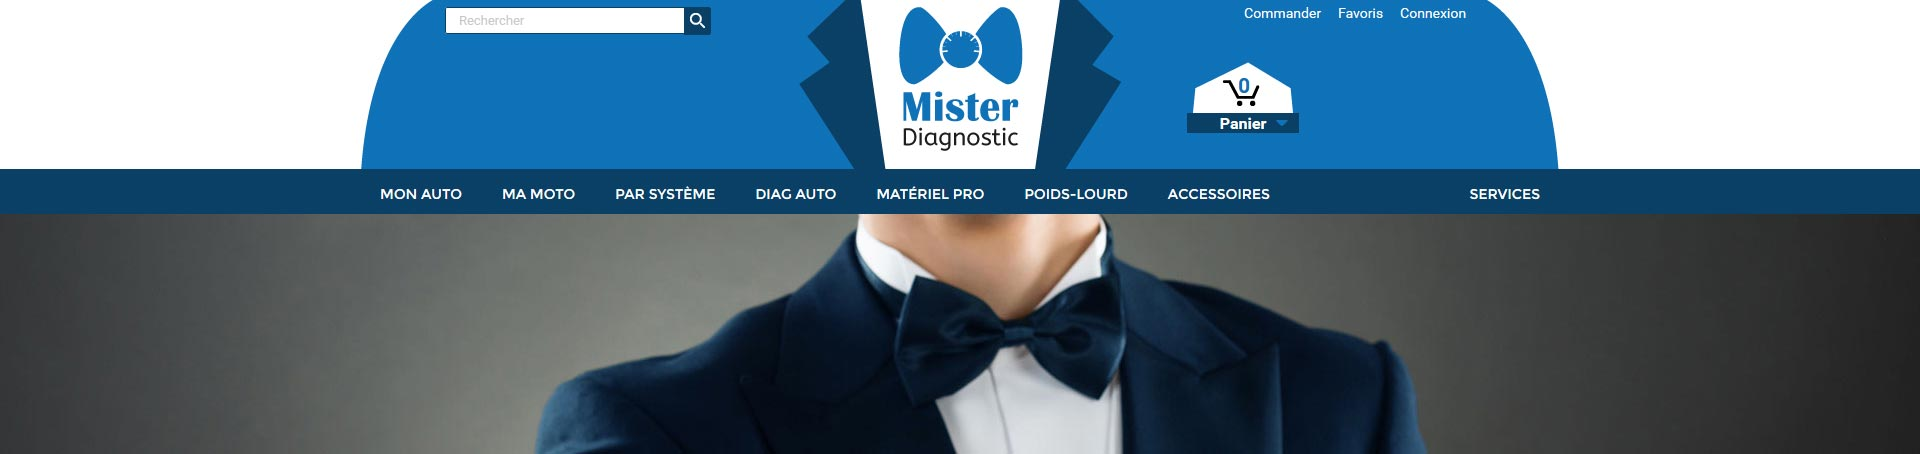 mister diagnostic